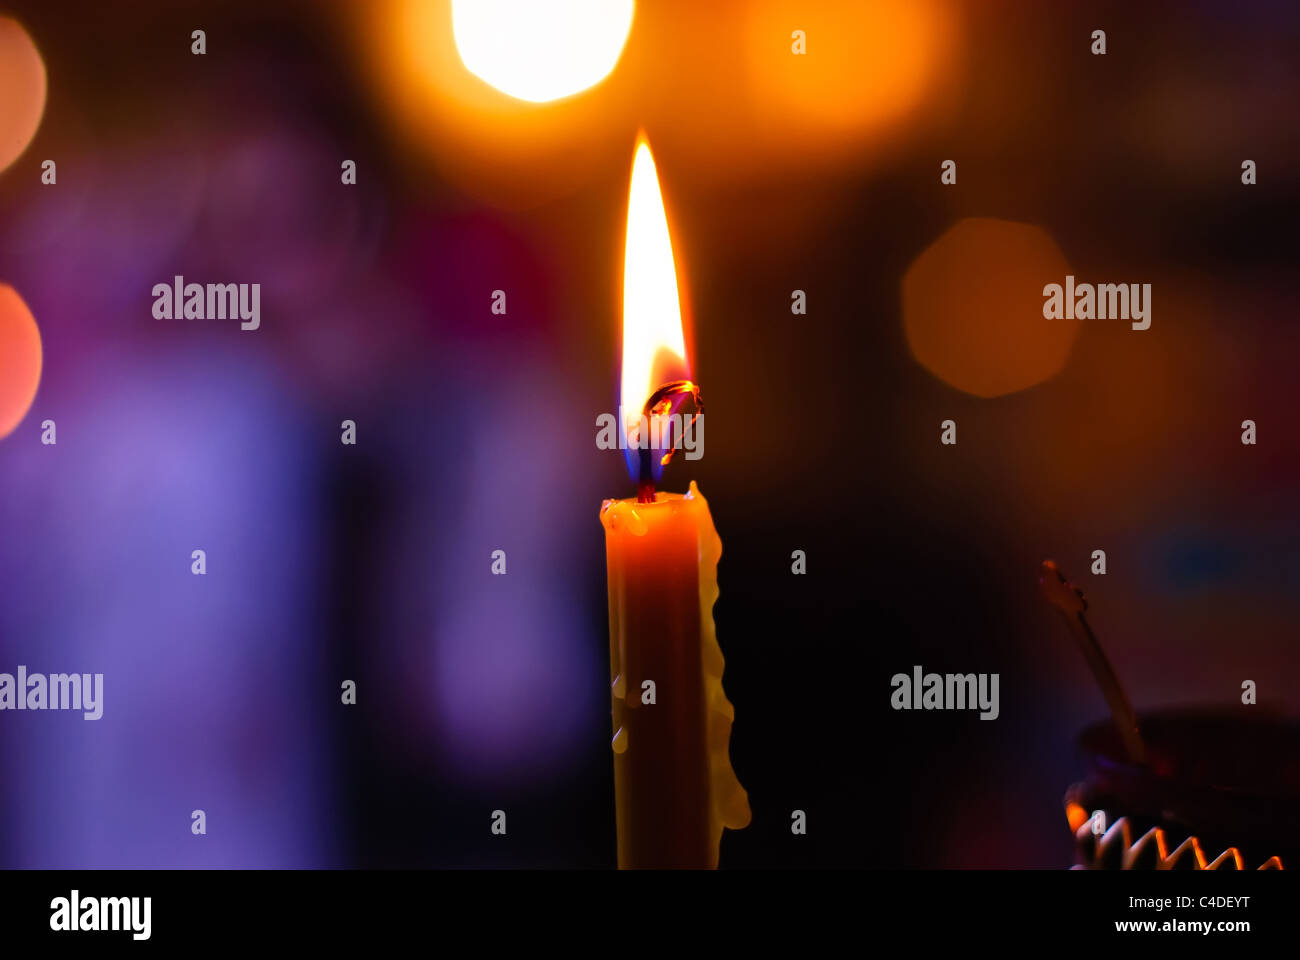 Burning candle on a blurred color background - Stock Image